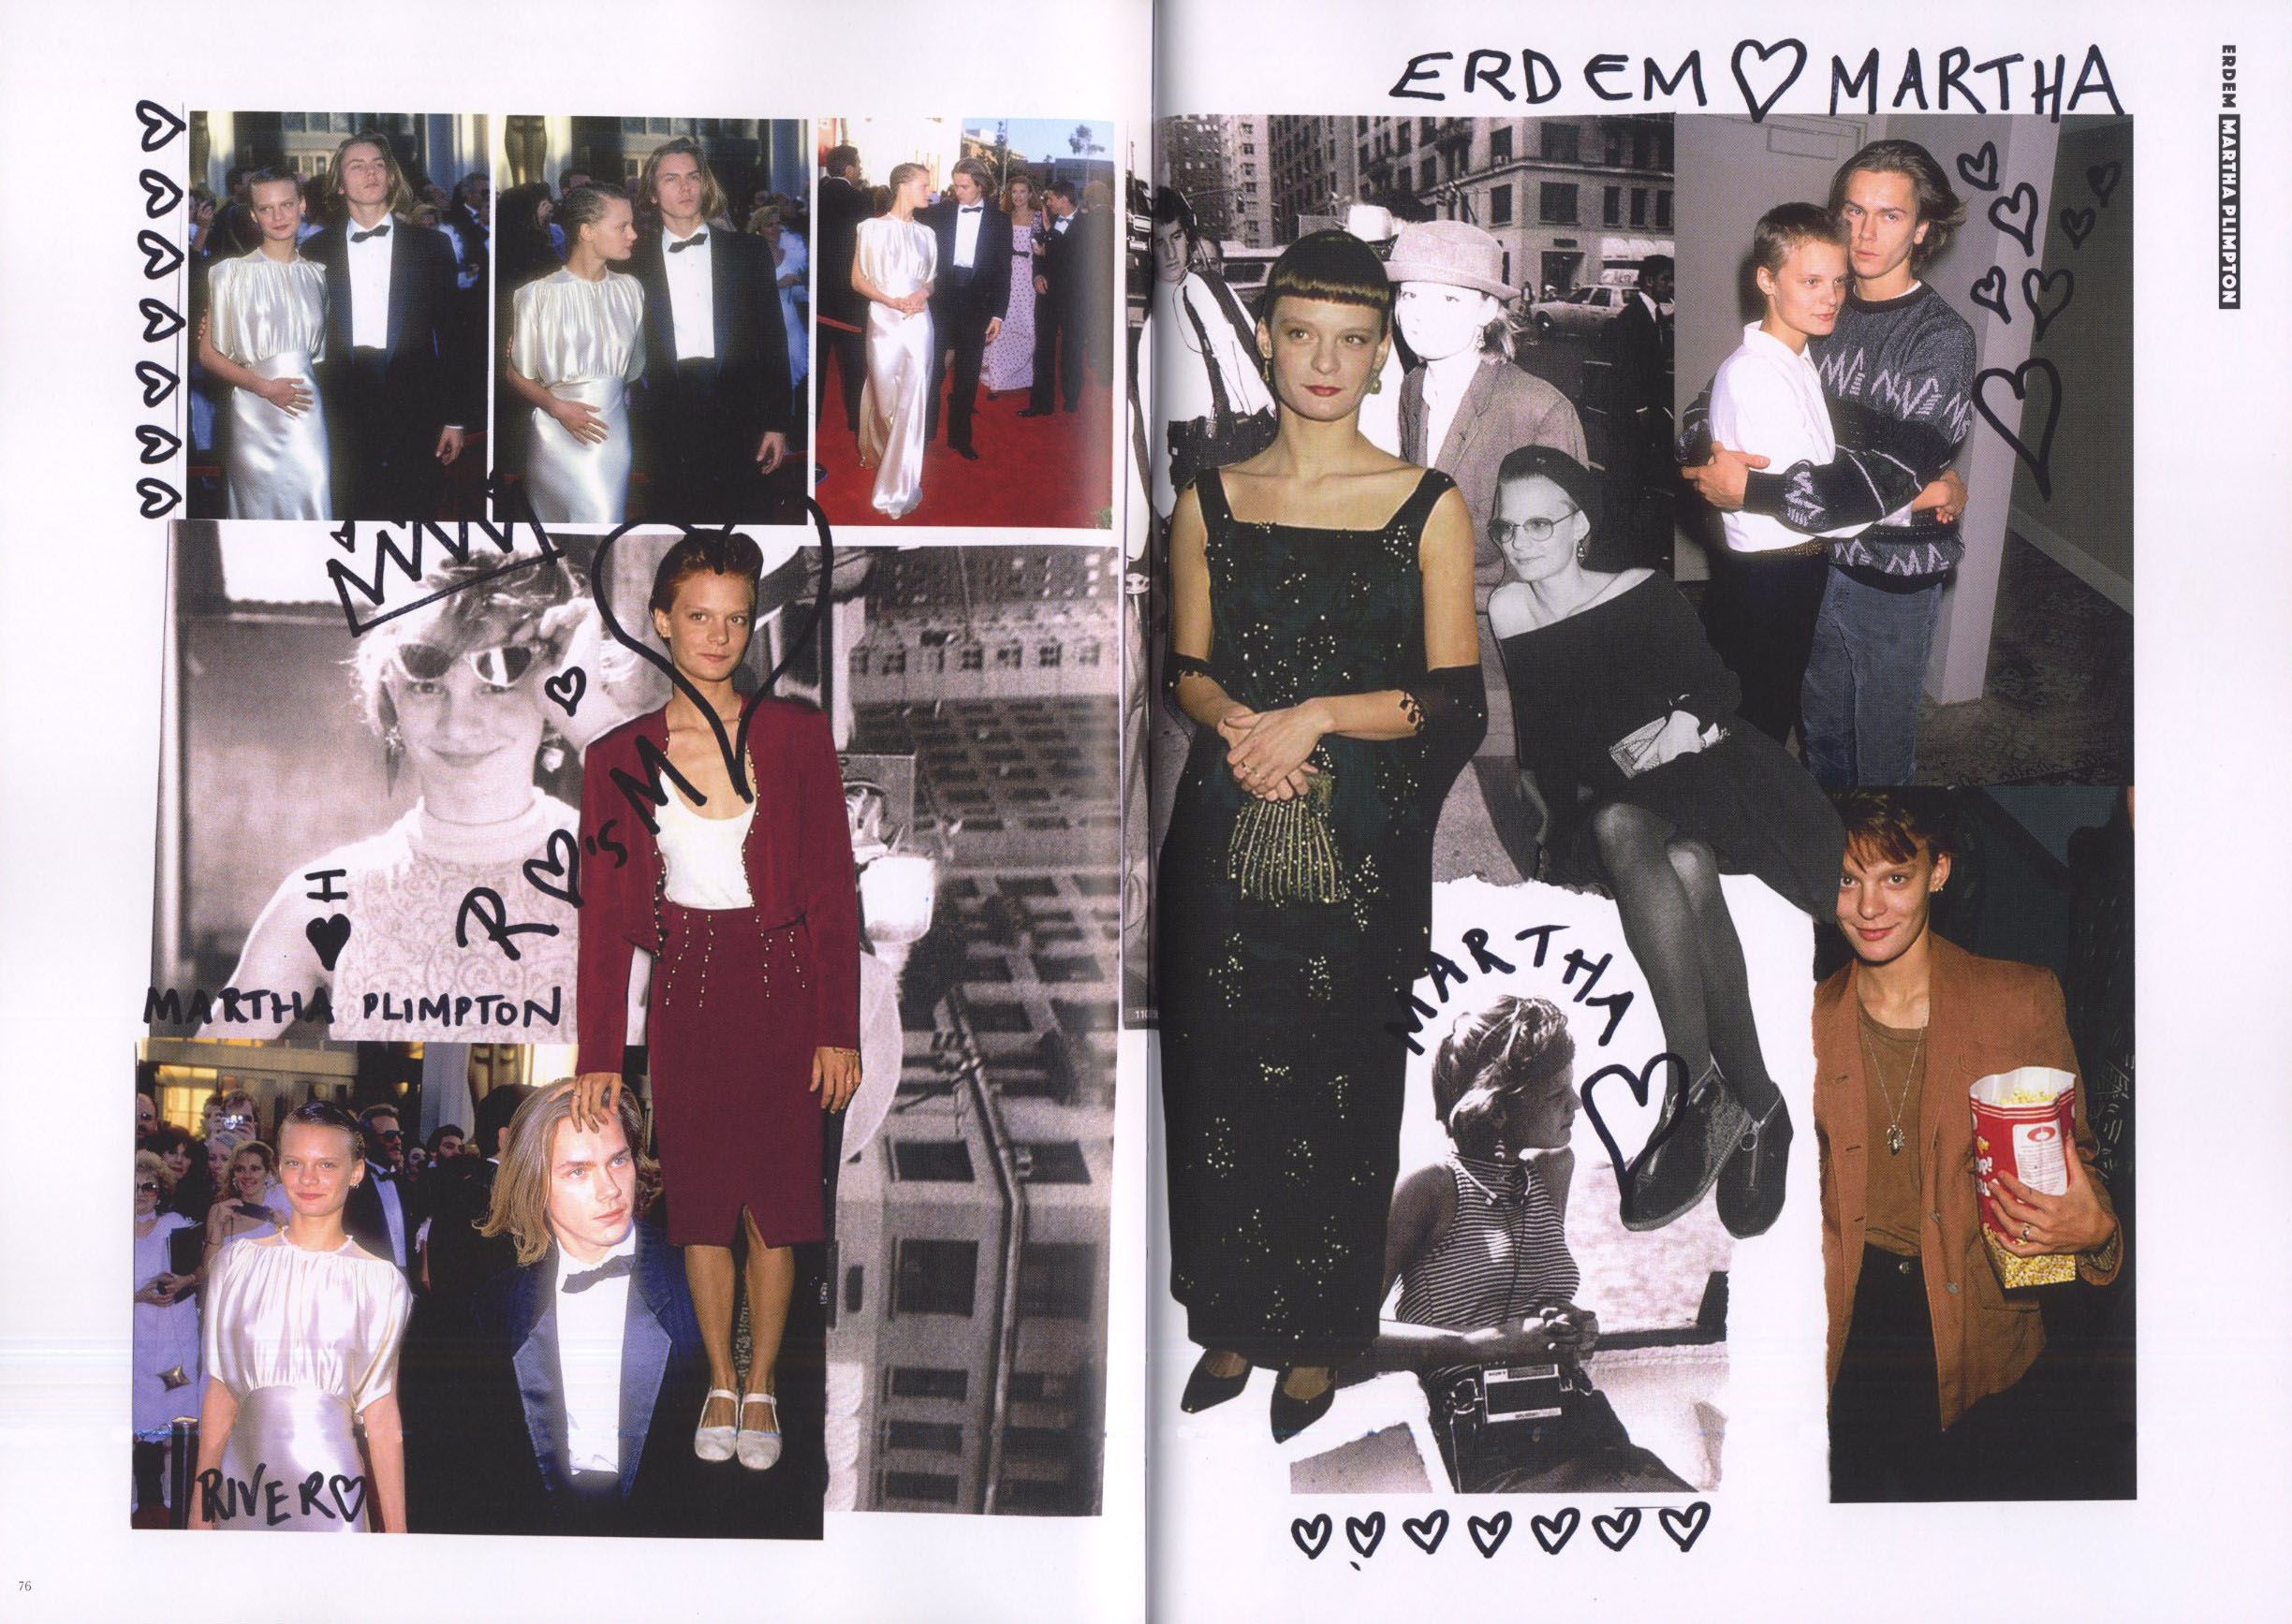 erdem martha plimpton fanpages issue 2